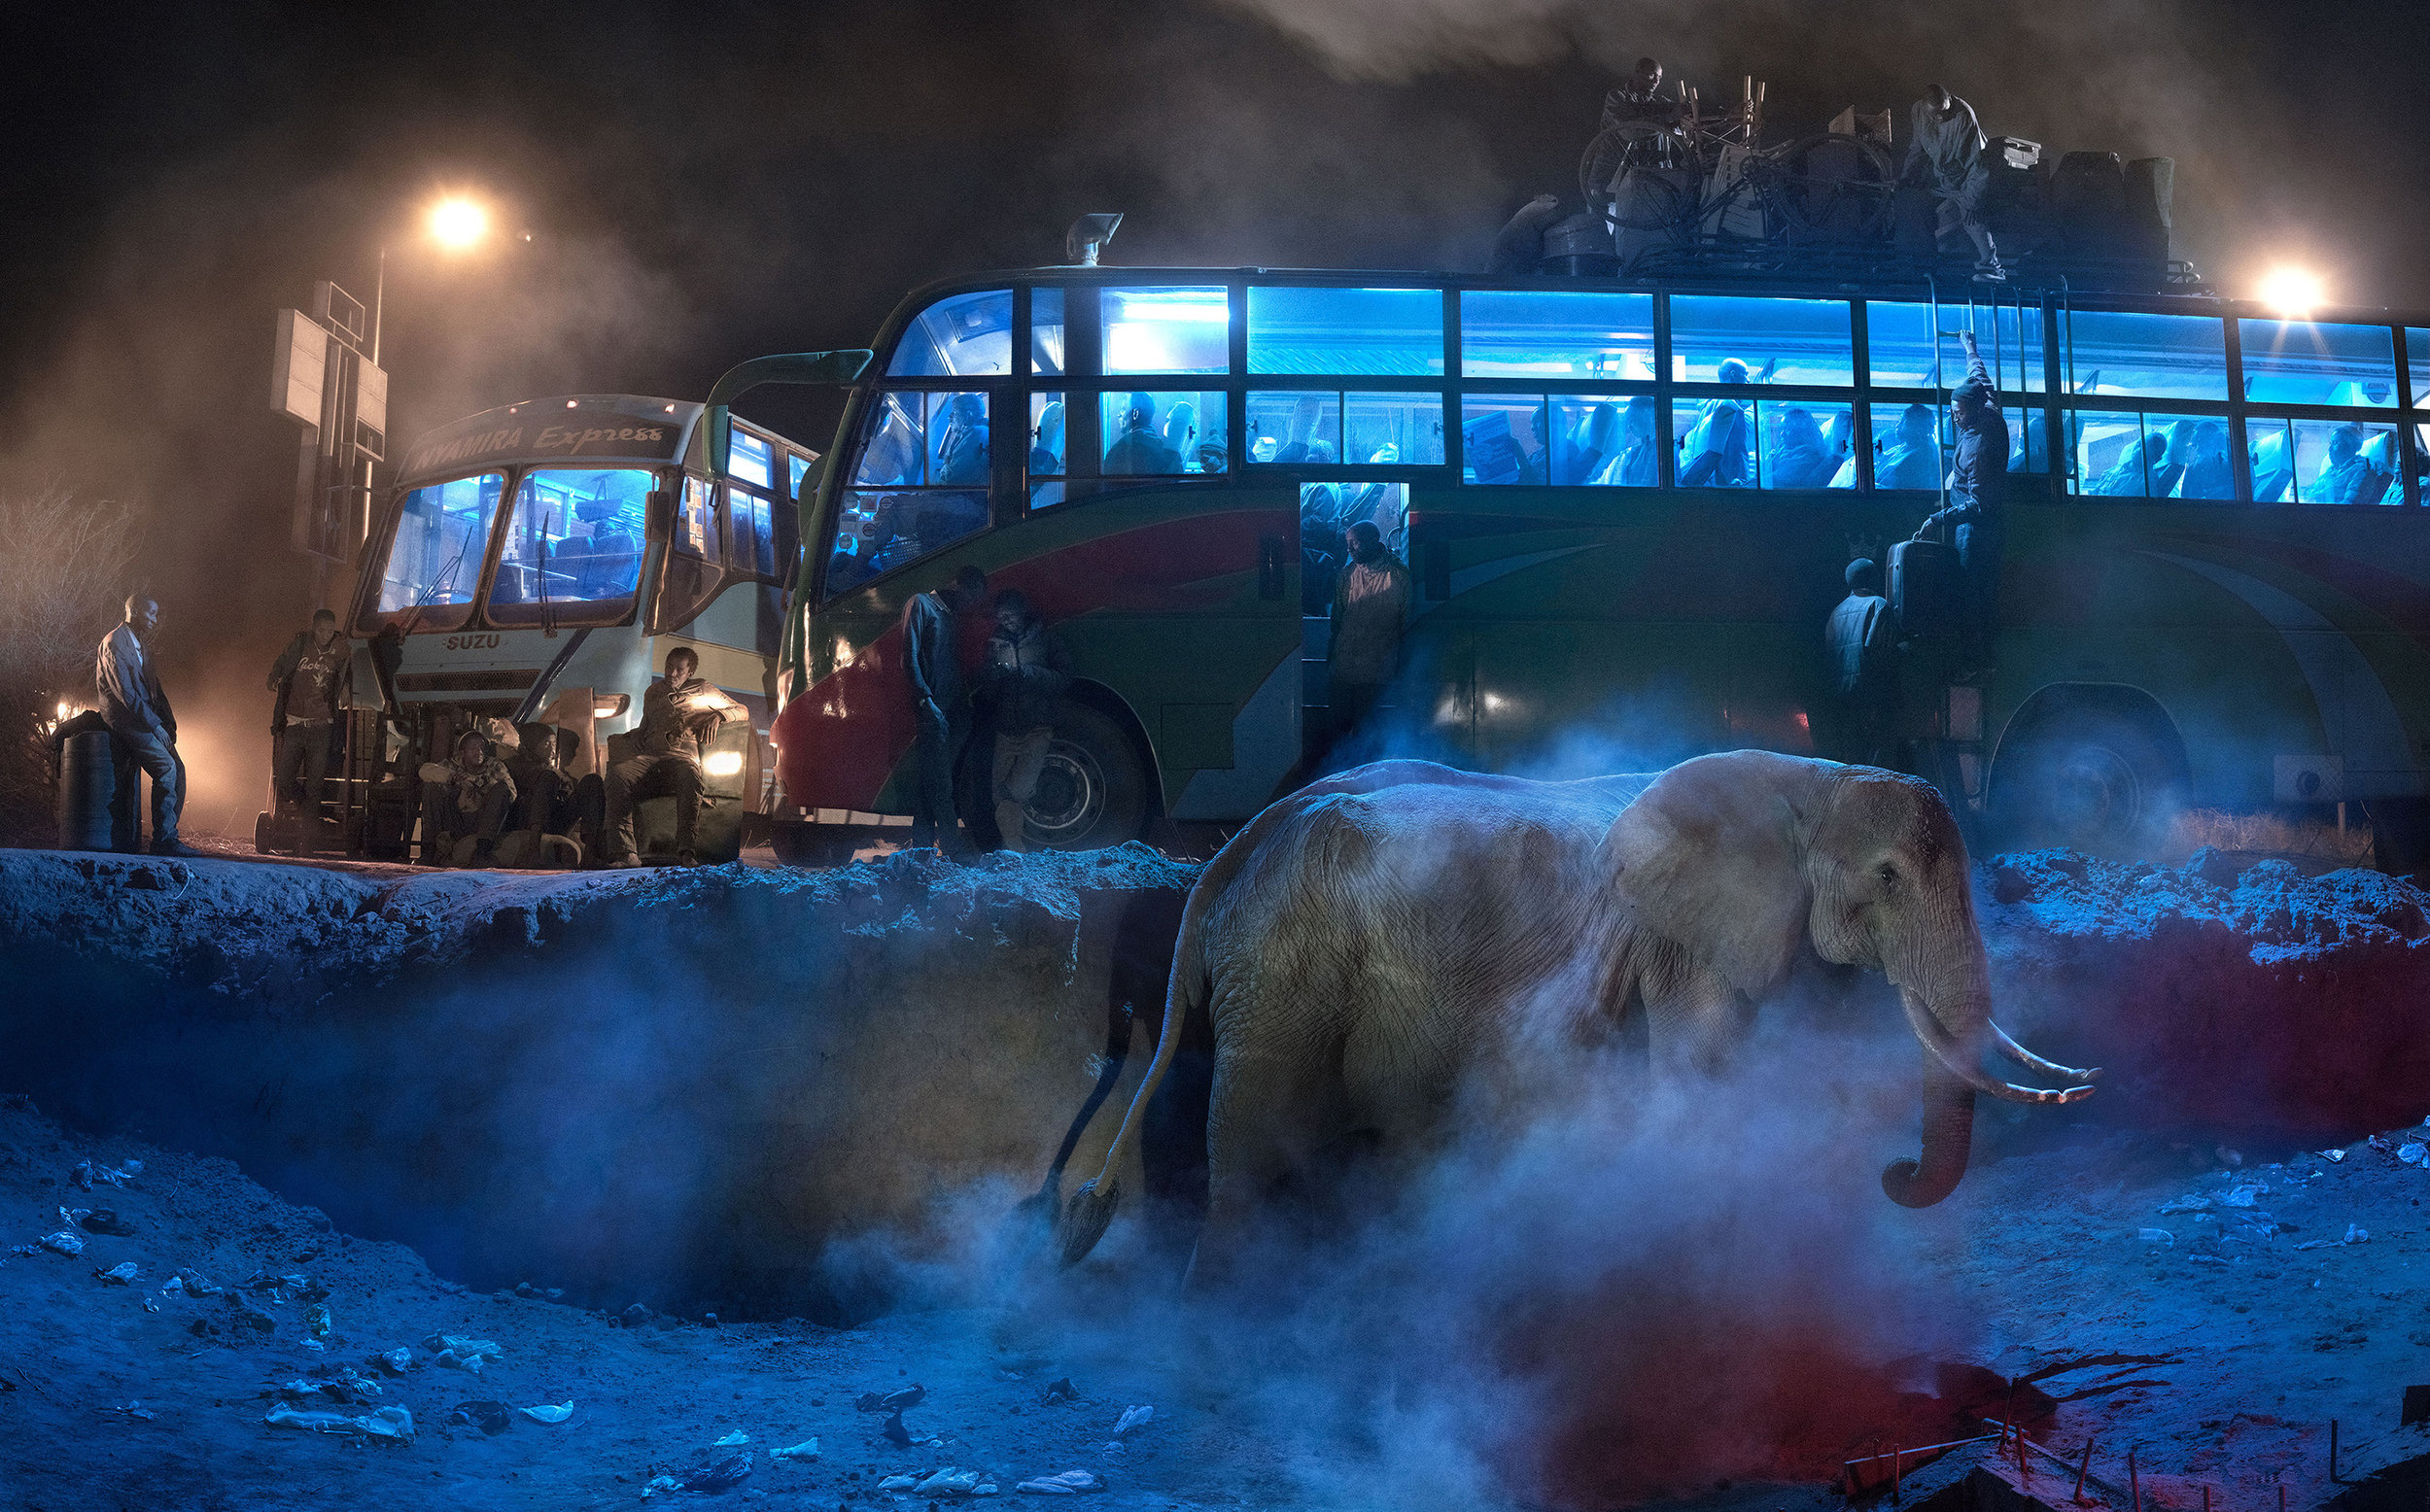 Nick Brandt   Bus station with Elephant, 2018   Archival pigment print, edition of 15 106.7 x 213.4 cm   INQUIRE